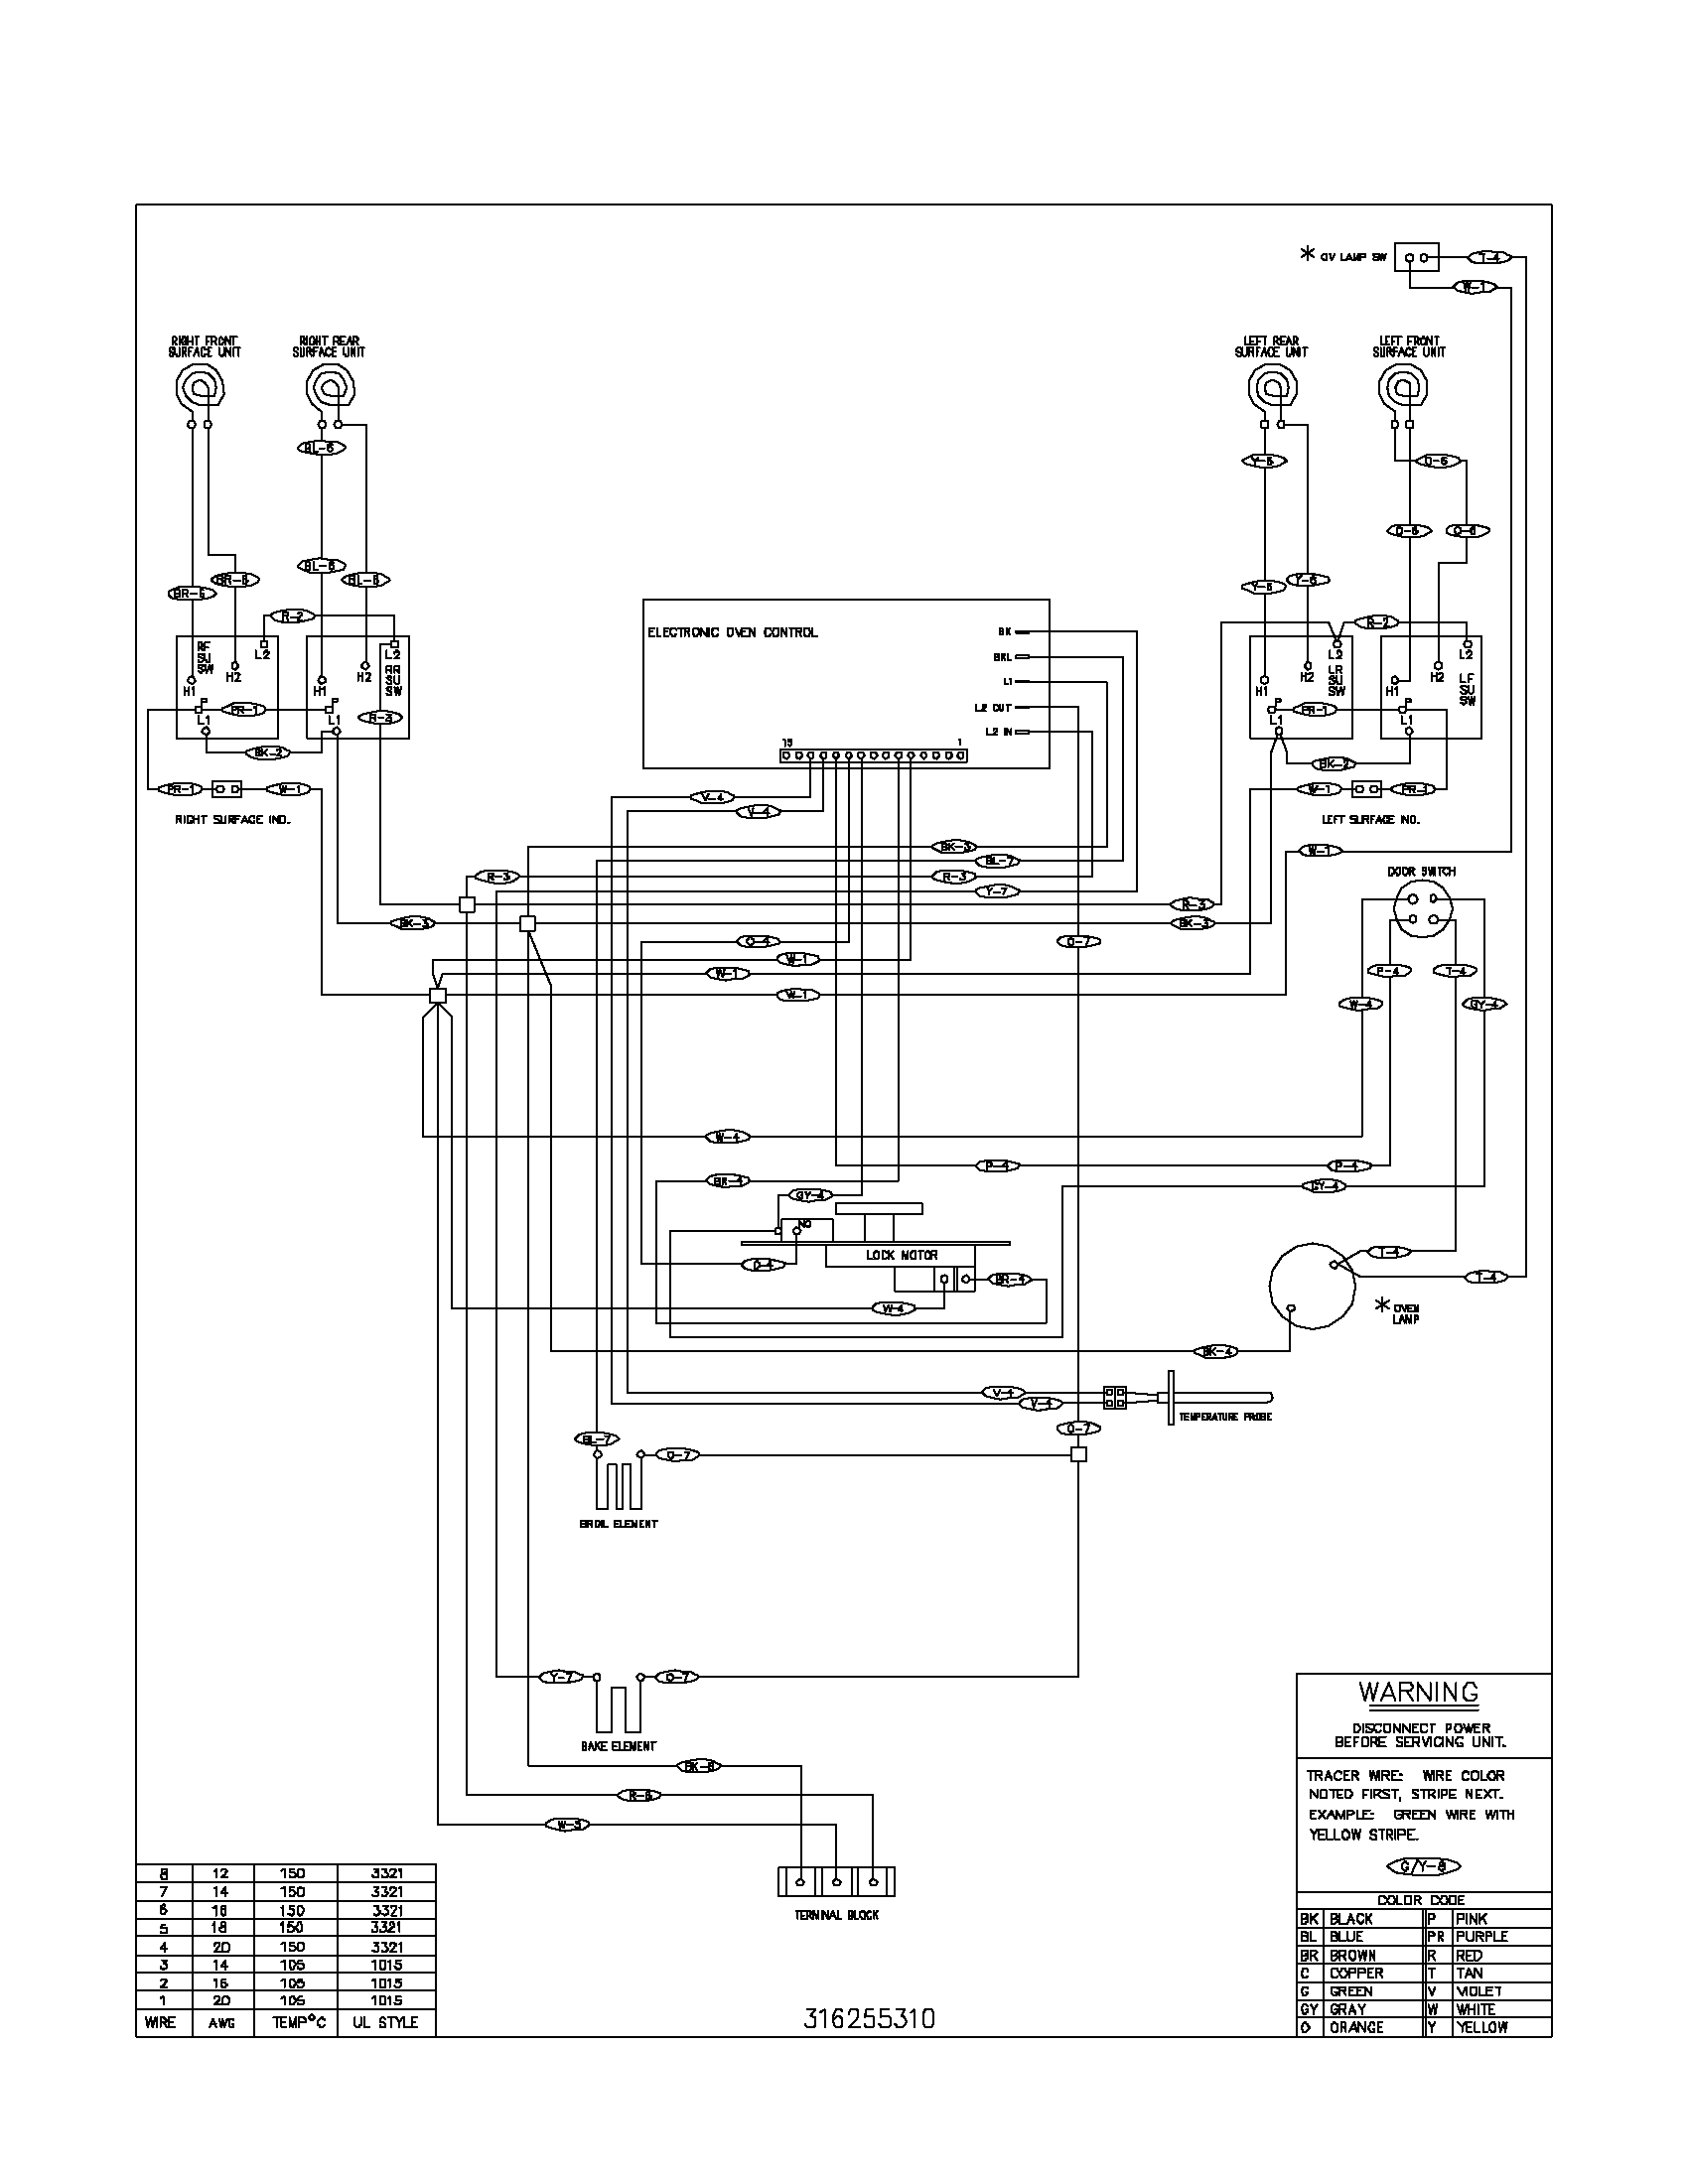 wiring diagrams for ge oven timers electric range wiring diagram electric wiring diagrams online wiring diagram for electric range the wiring diagram ge oven